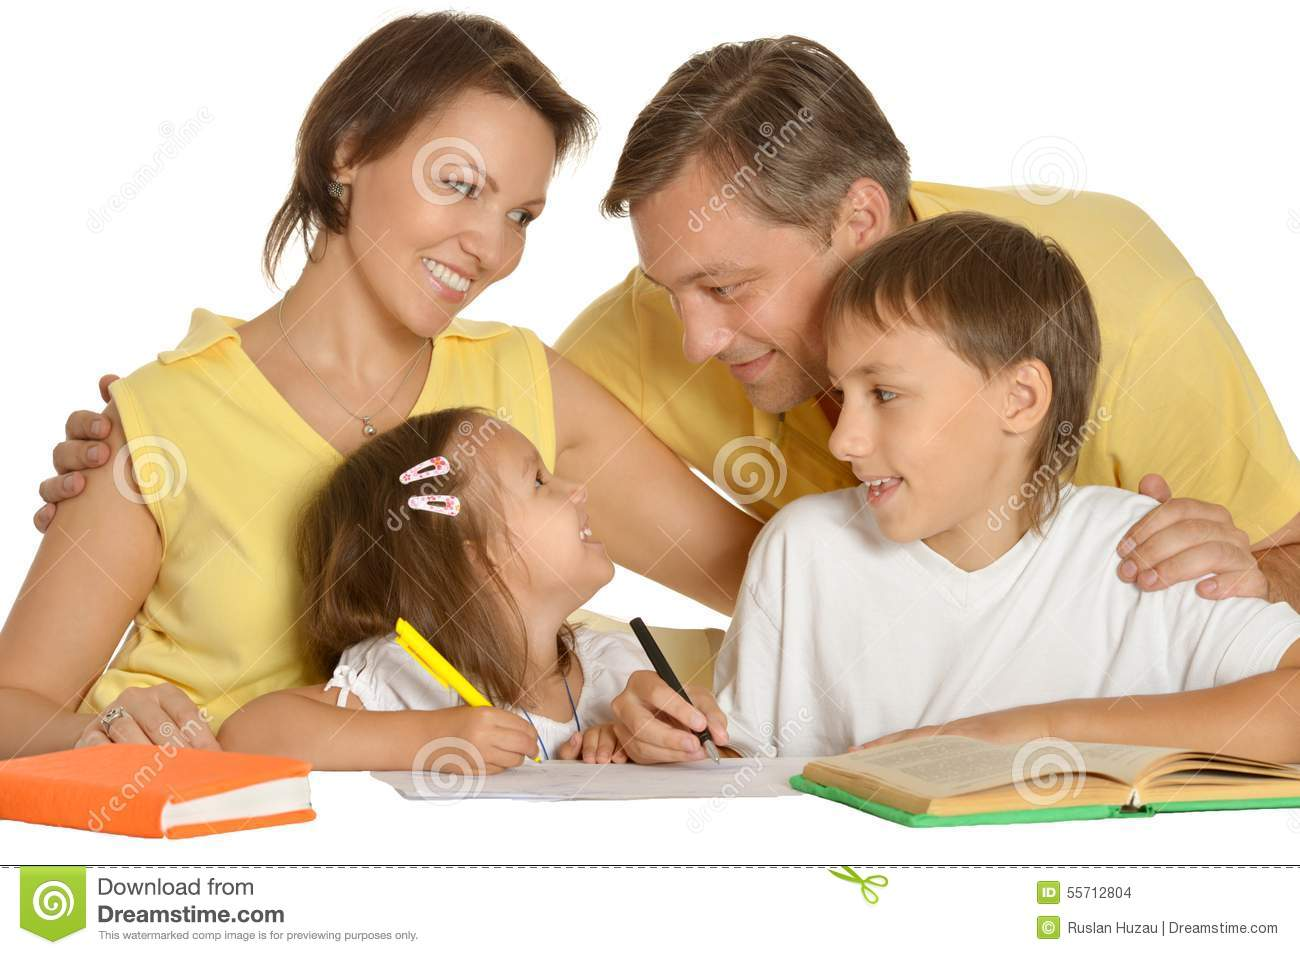 Do parents help with homework